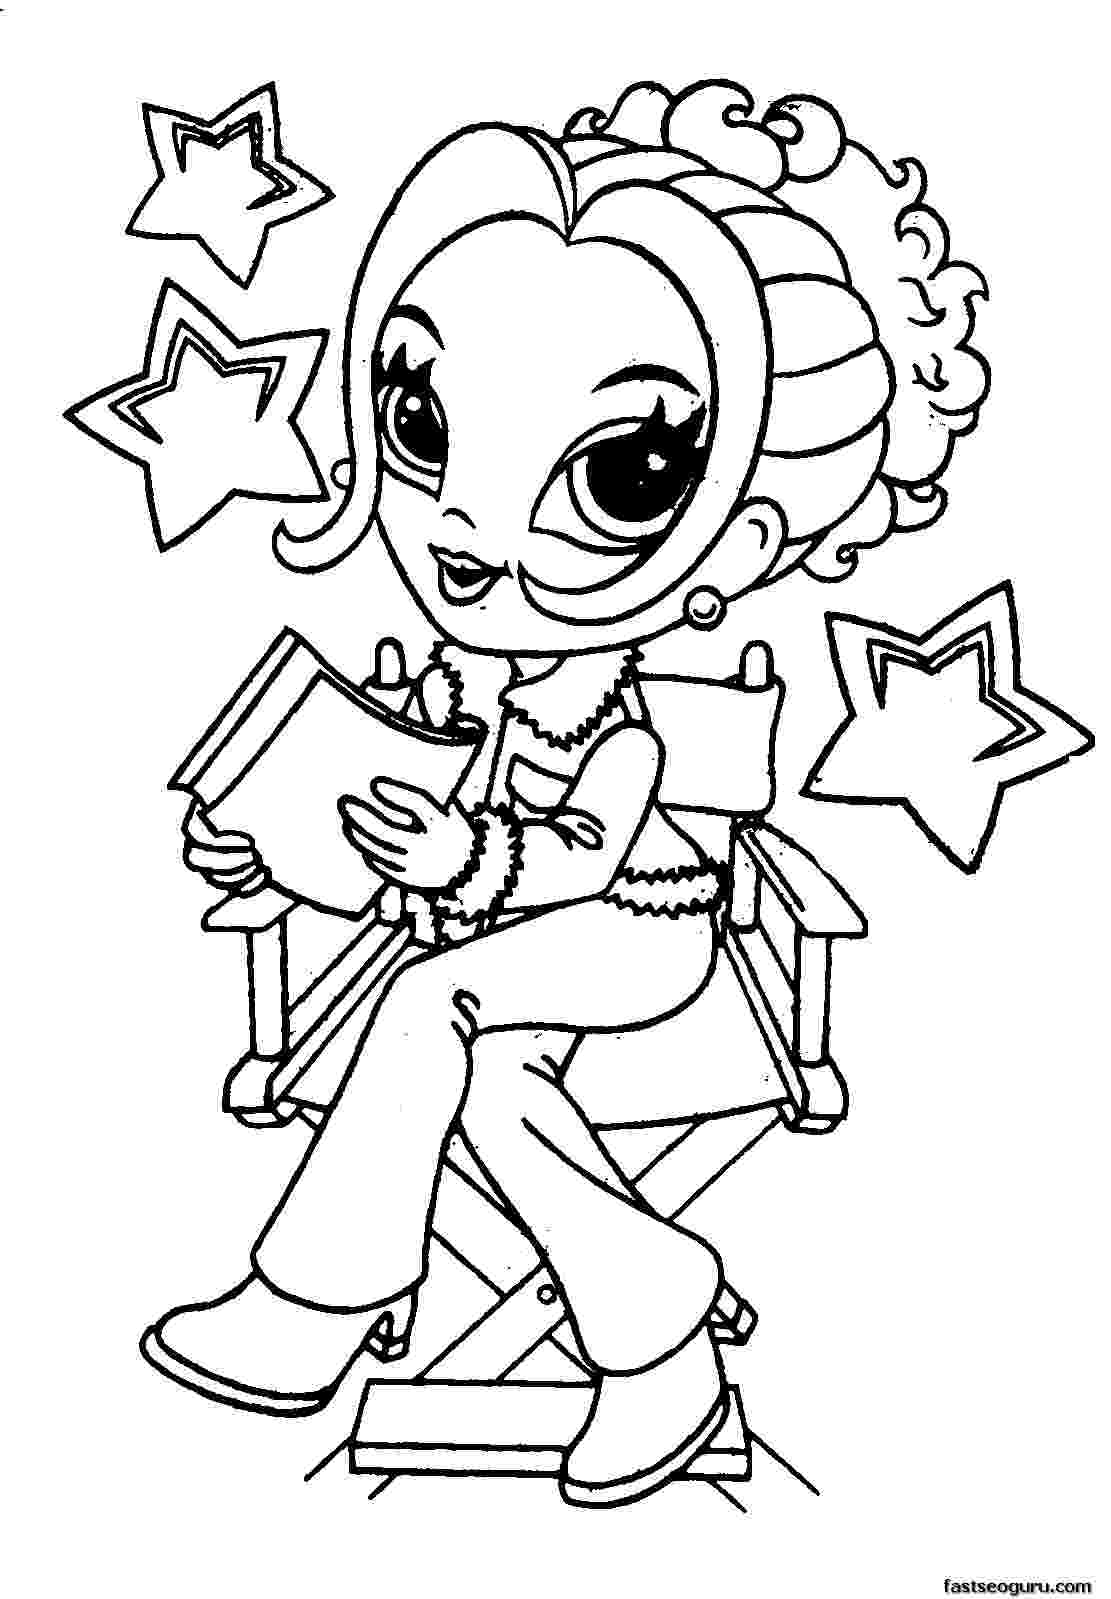 girls color pages coloring pages for girls best coloring pages for kids girls pages color